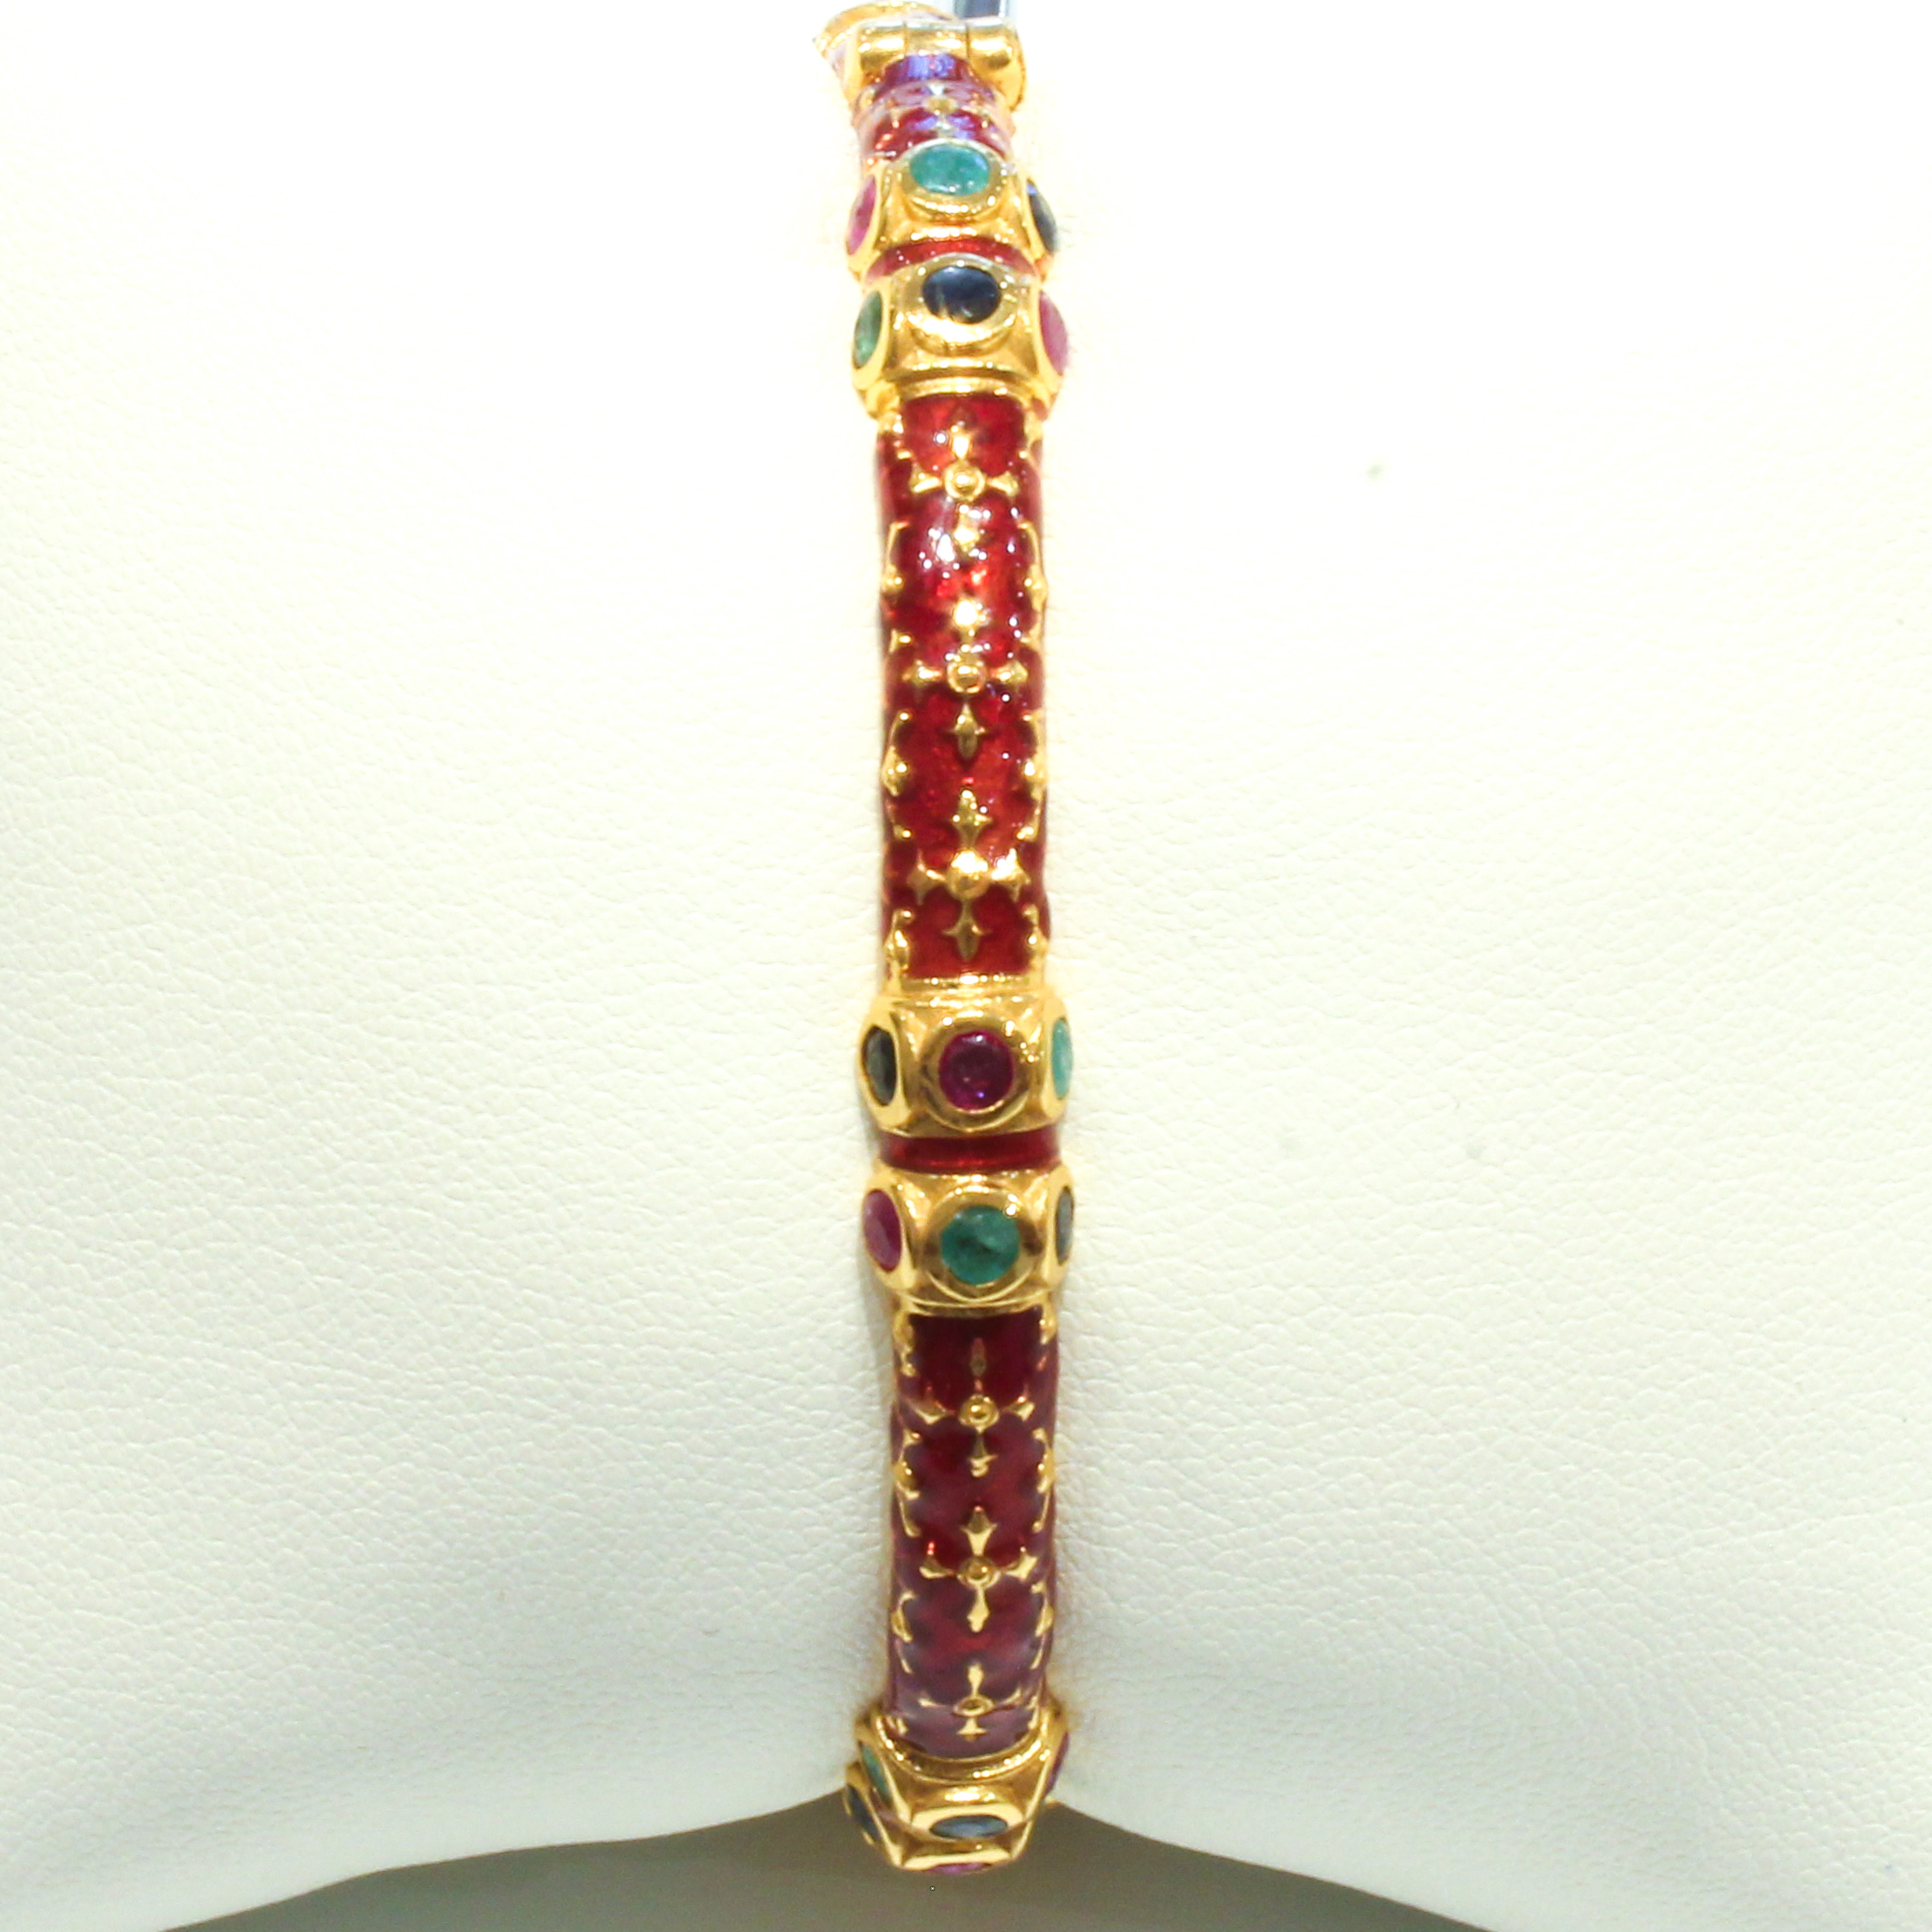 Enamel and Precious Stones Bangle